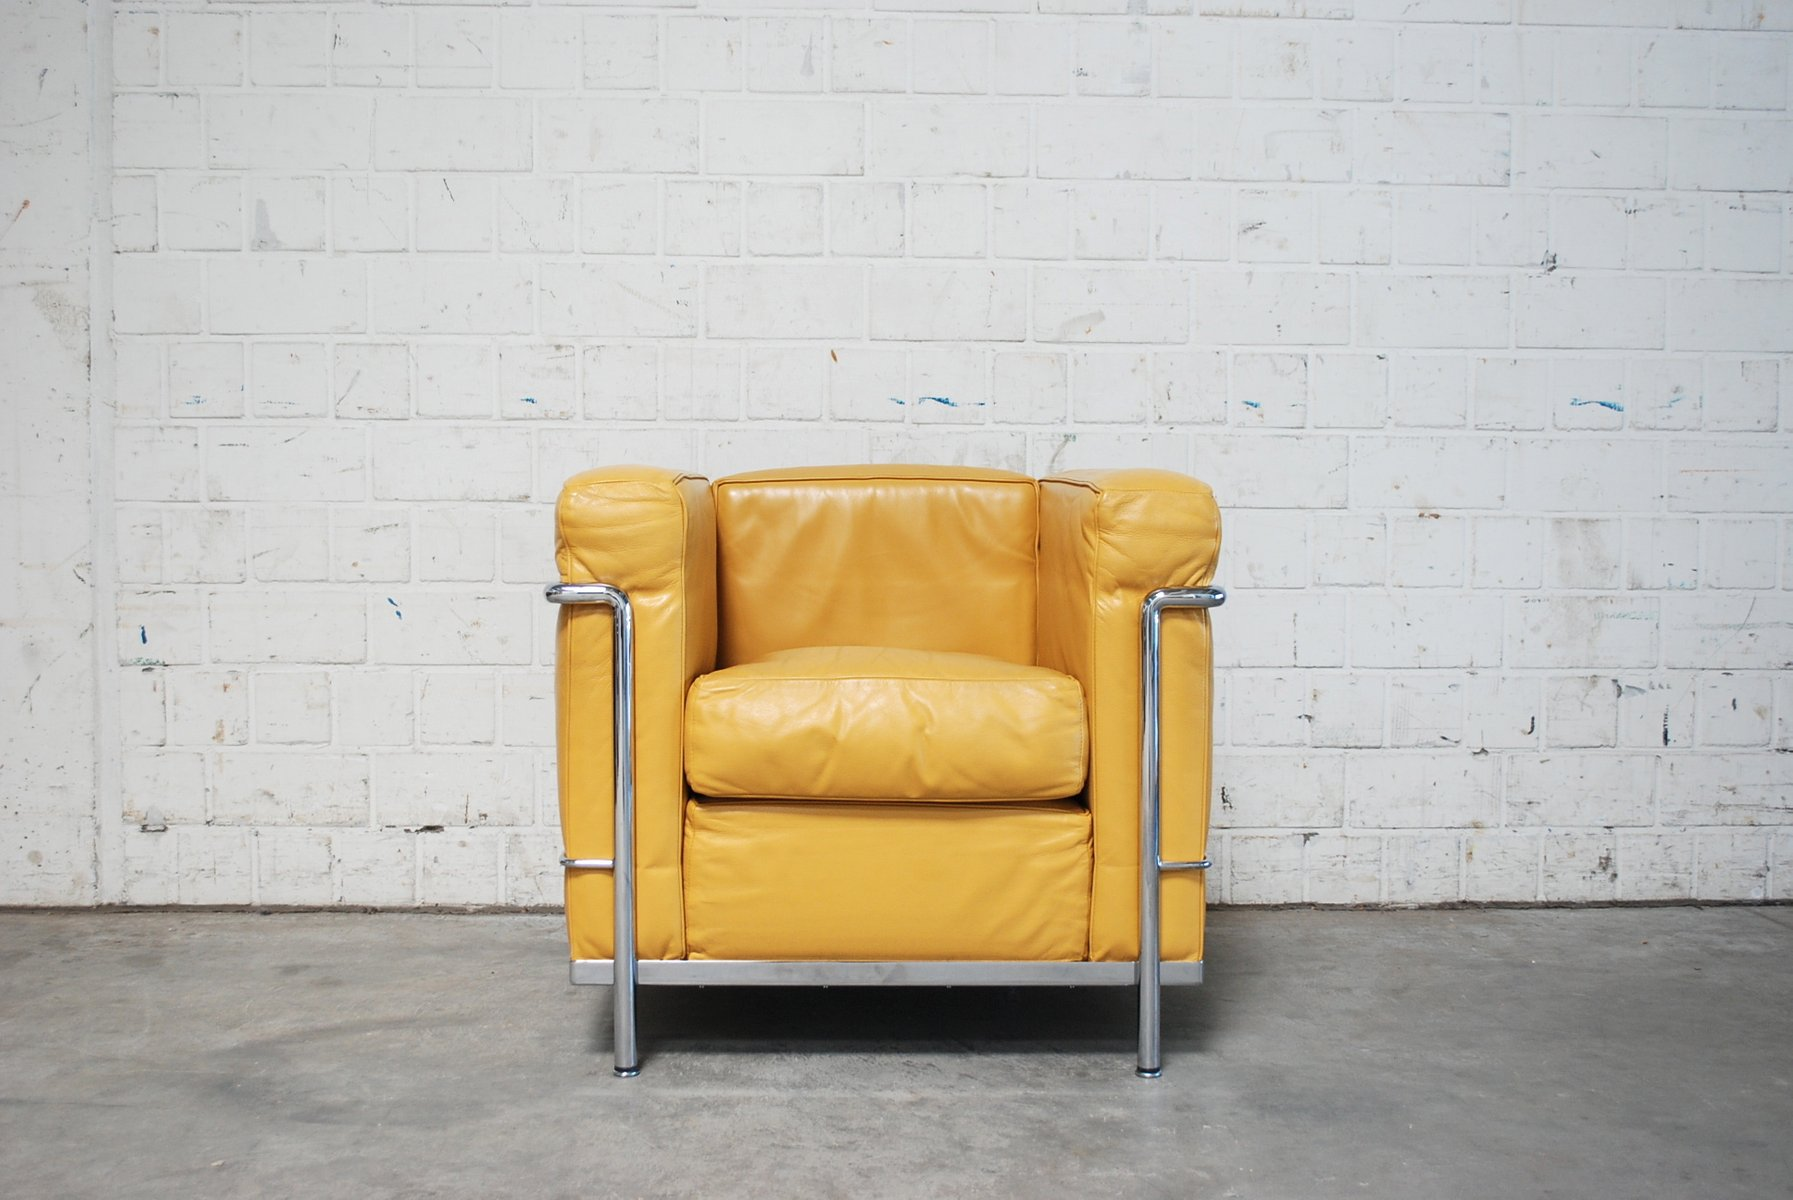 Vintage yellow model lc2 leather chair by le corbusier for - Canape lc2 le corbusier ...